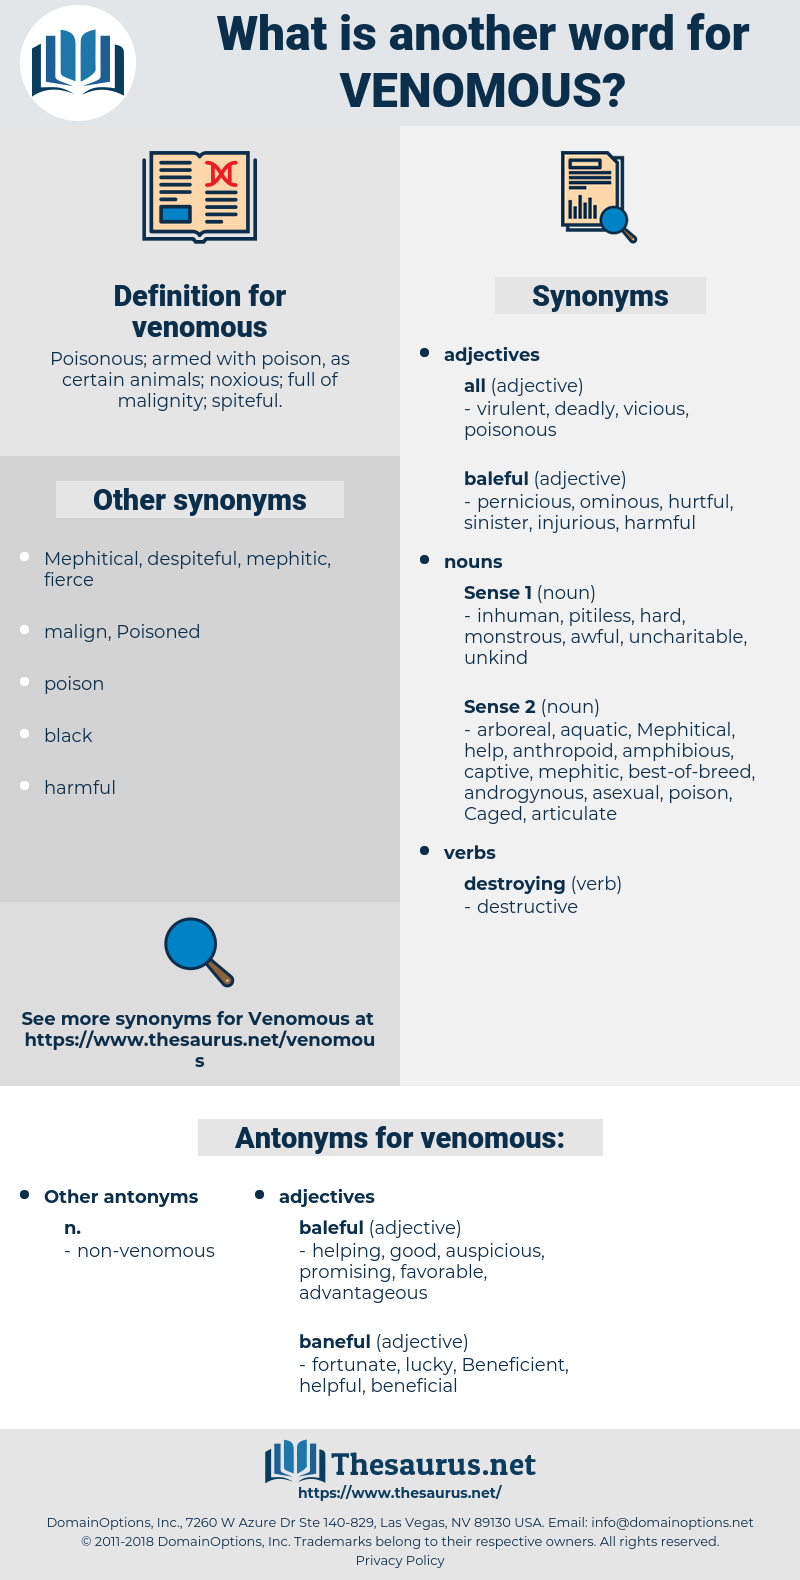 venomous, synonym venomous, another word for venomous, words like venomous, thesaurus venomous